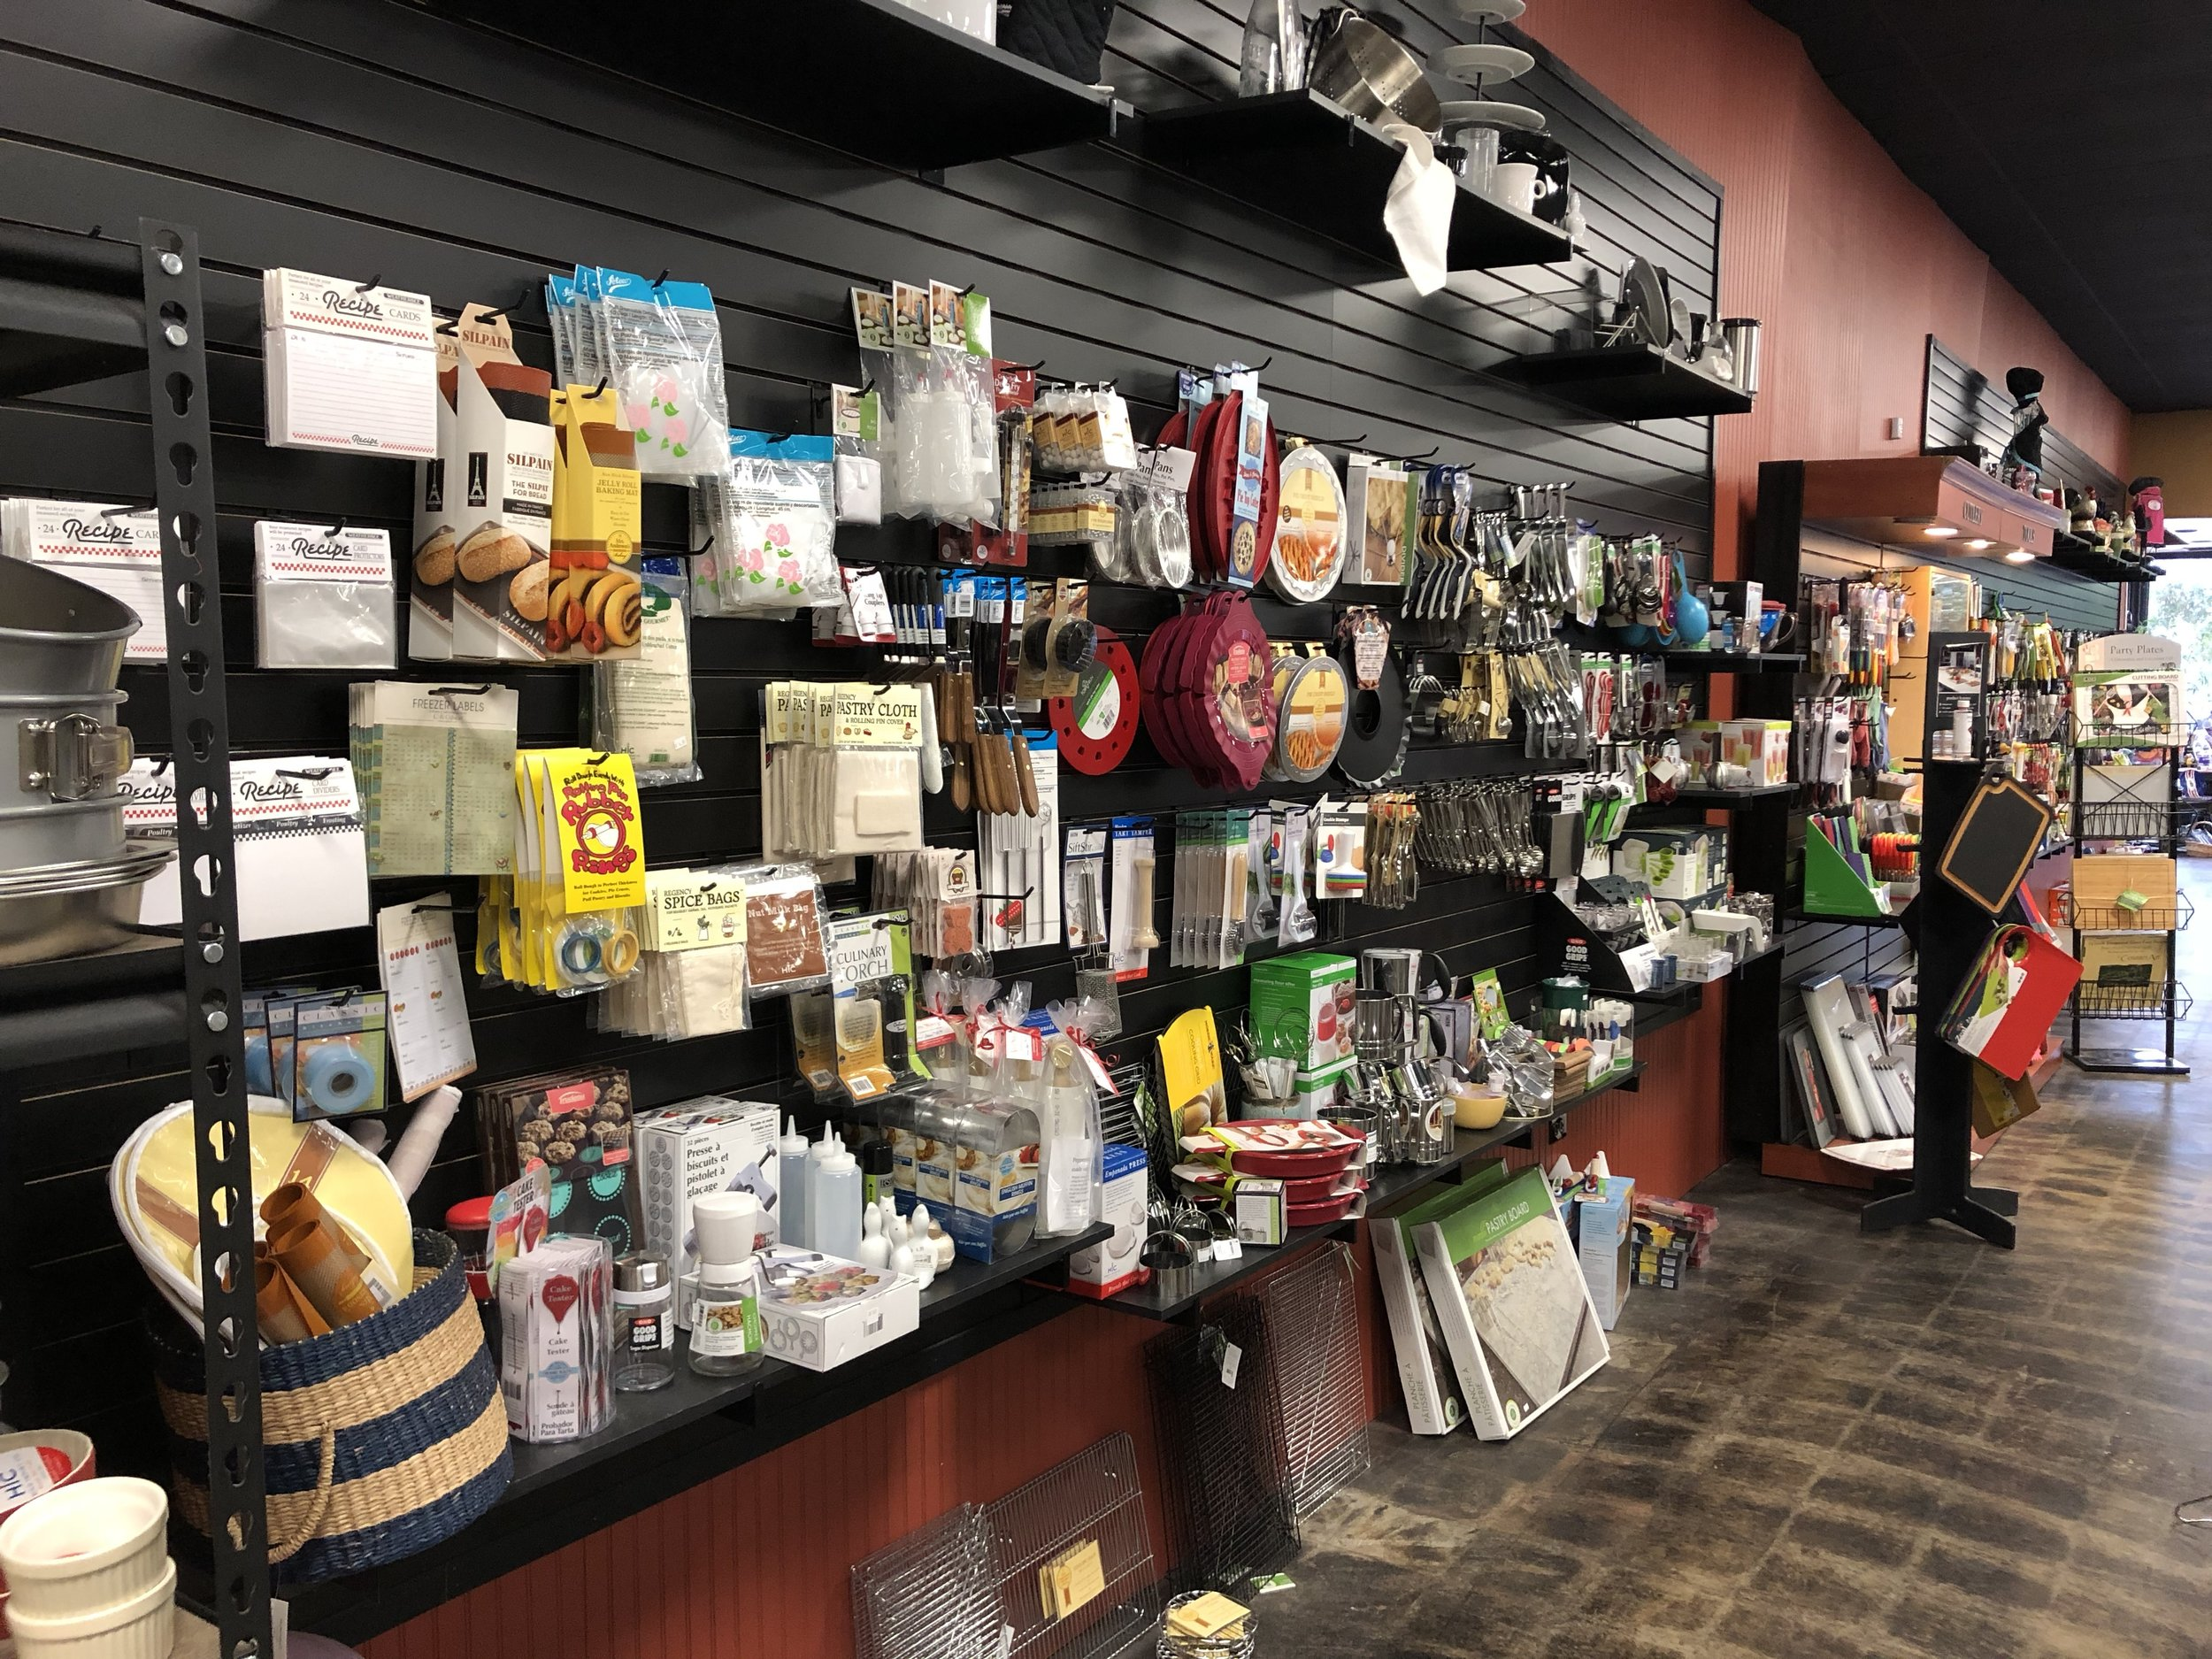 kitchen store com 7 piece table set apron strings located at 1 south main in downtown hutchinson kansas is the destination for all your necessities we carry a wide range of products